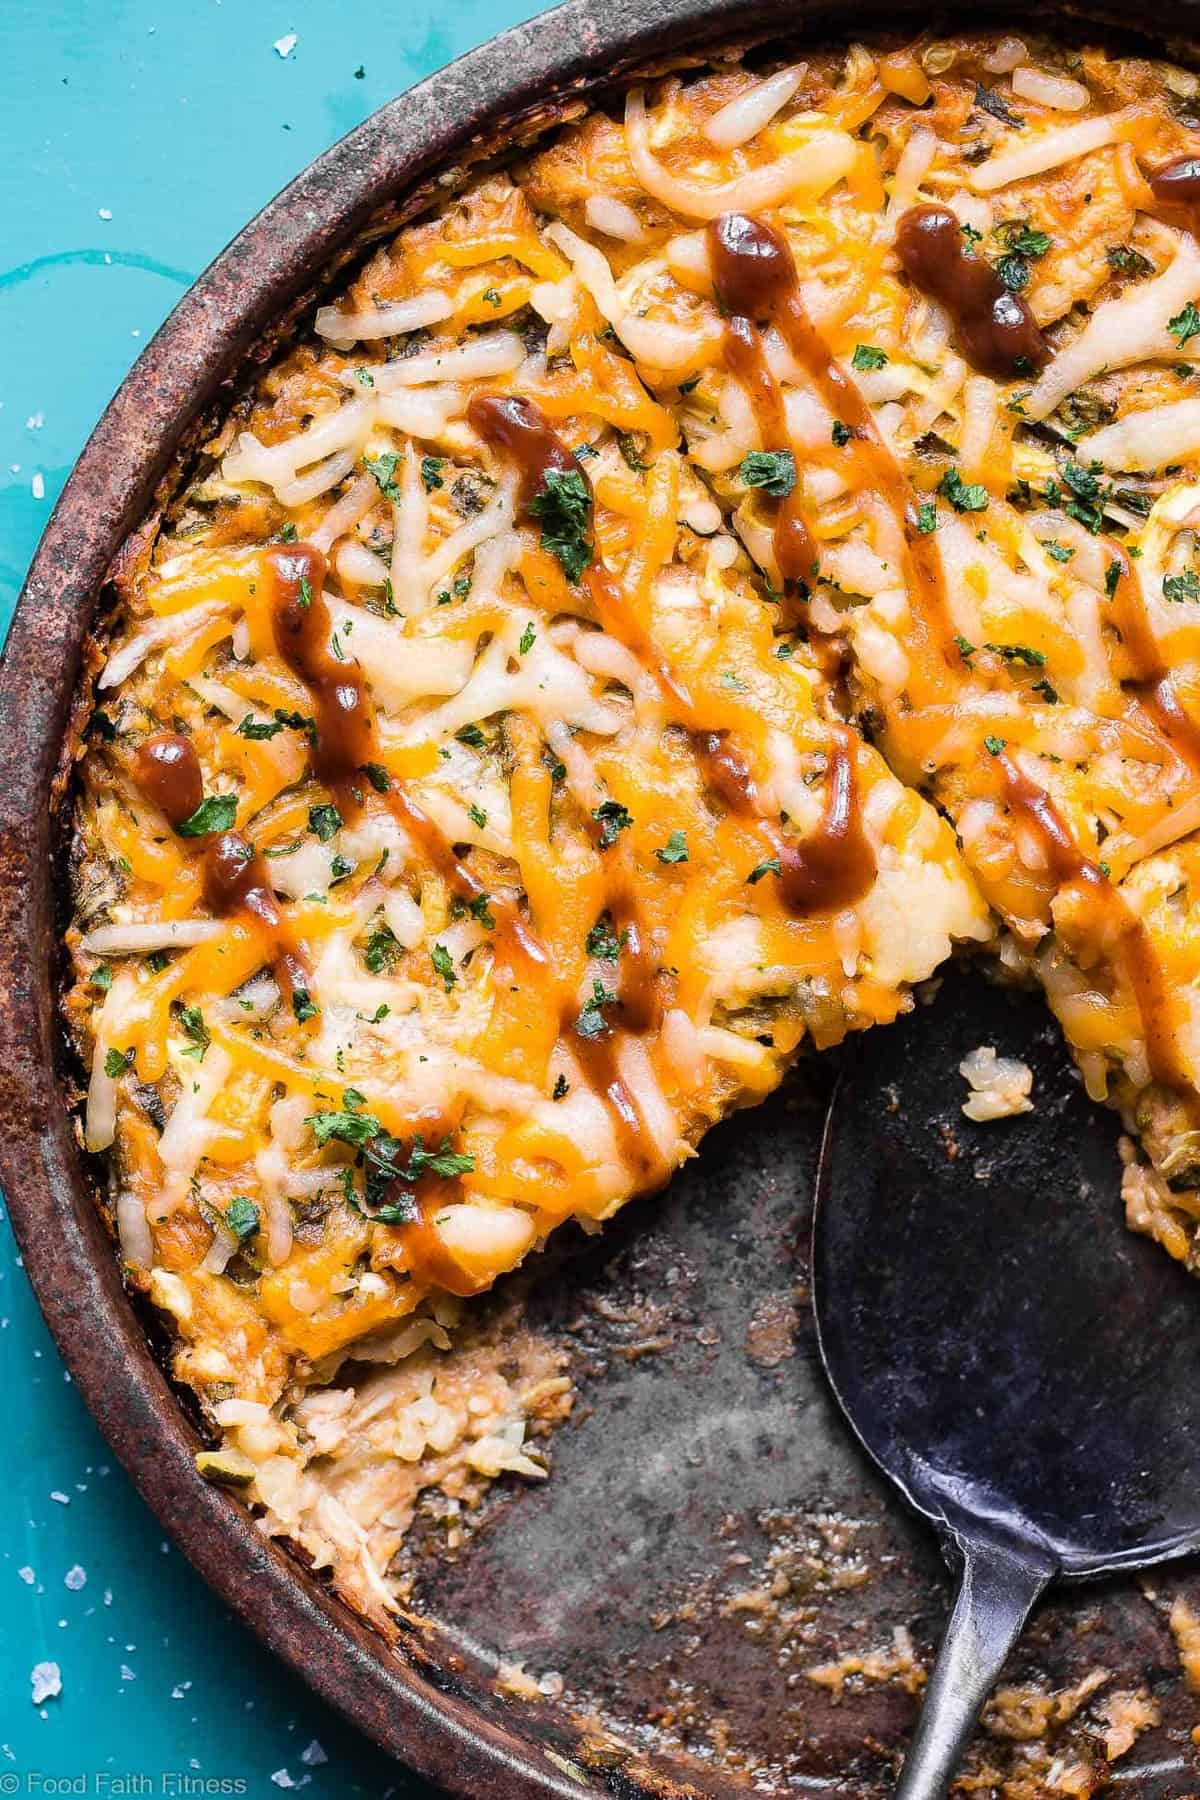 Keto BBQ Chicken Zucchini Noodle Casserole - This 6 ingredient casserole is an ULTRA delicious weeknight dinner that is under 300 calories, protein packed and will please even picky eaters! Gluten free & low carb too! | #Foodfaithfitness | #Keto #Lowcarb #Glutenfree #Sugarfree #Healthy